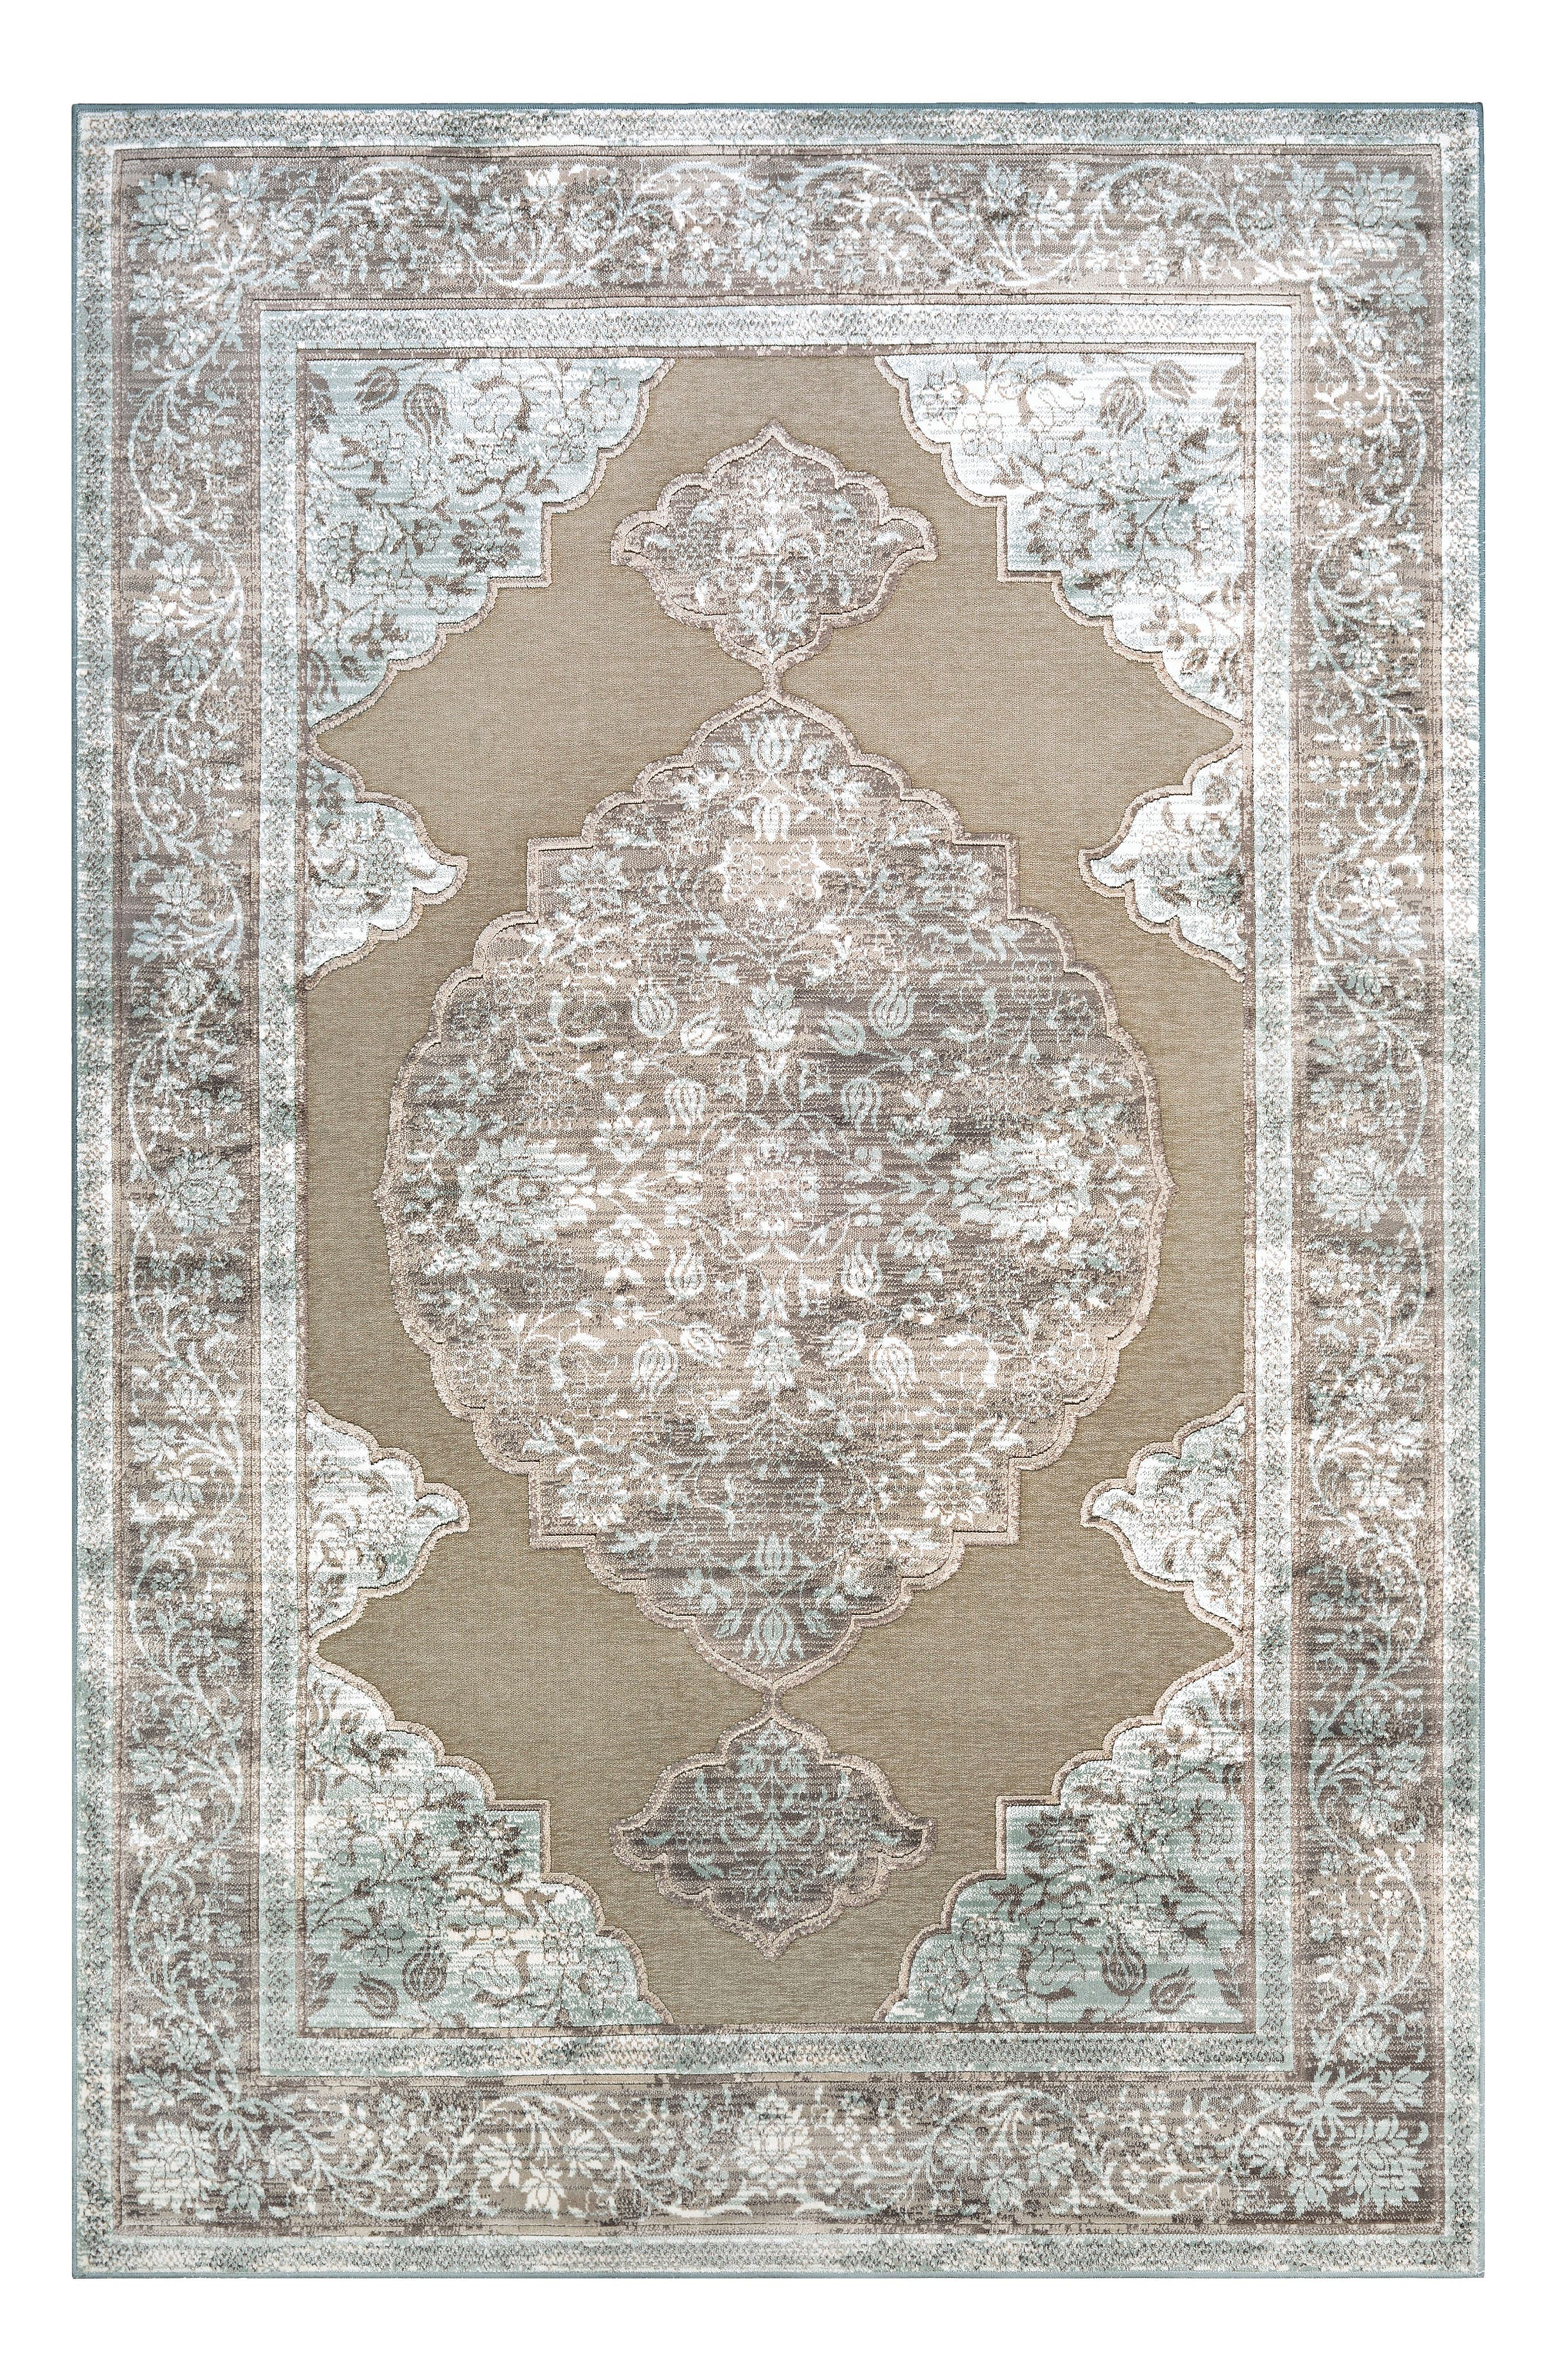 Main Image - Couristan Cire Floral Medallion Area Rug